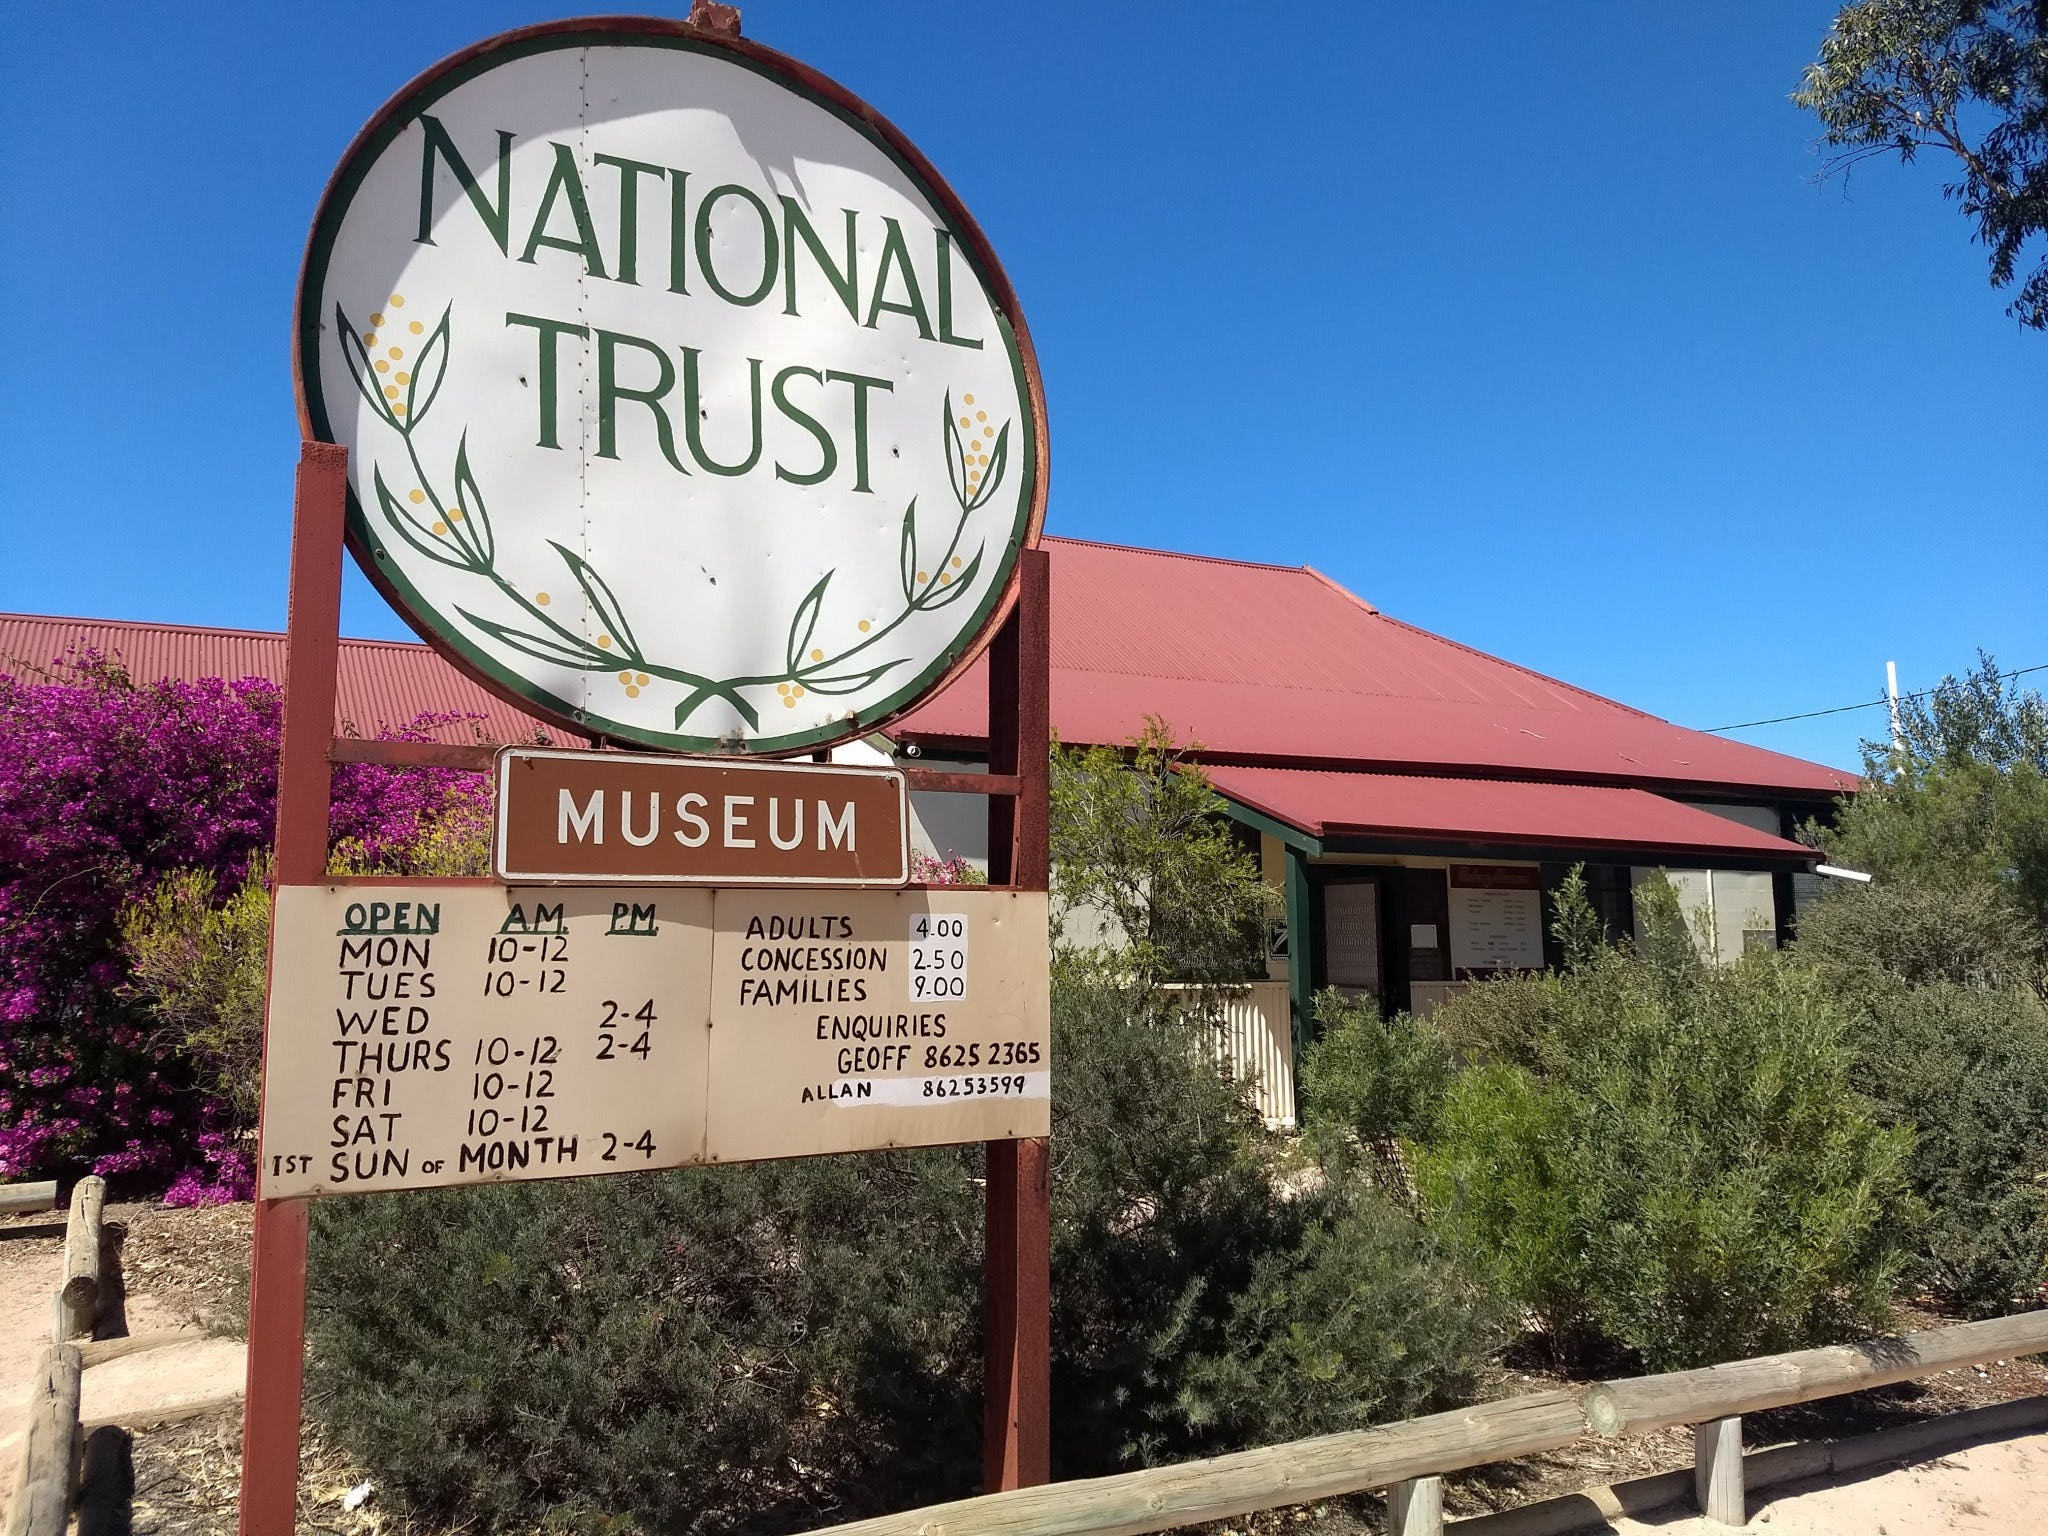 Ceduna National Trust Musuem - Find Attractions